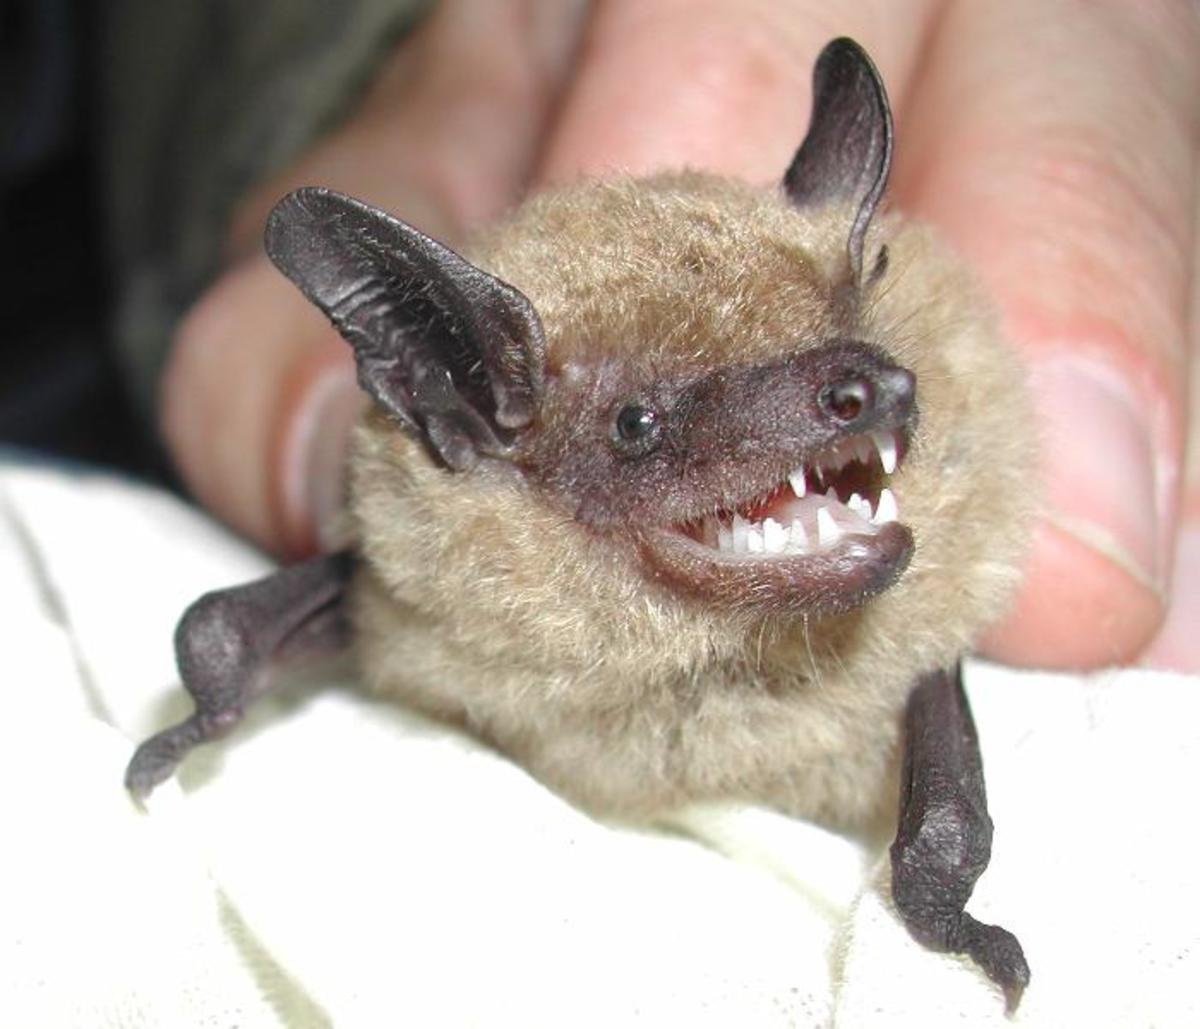 What its like to be a bat - Critical Assessment